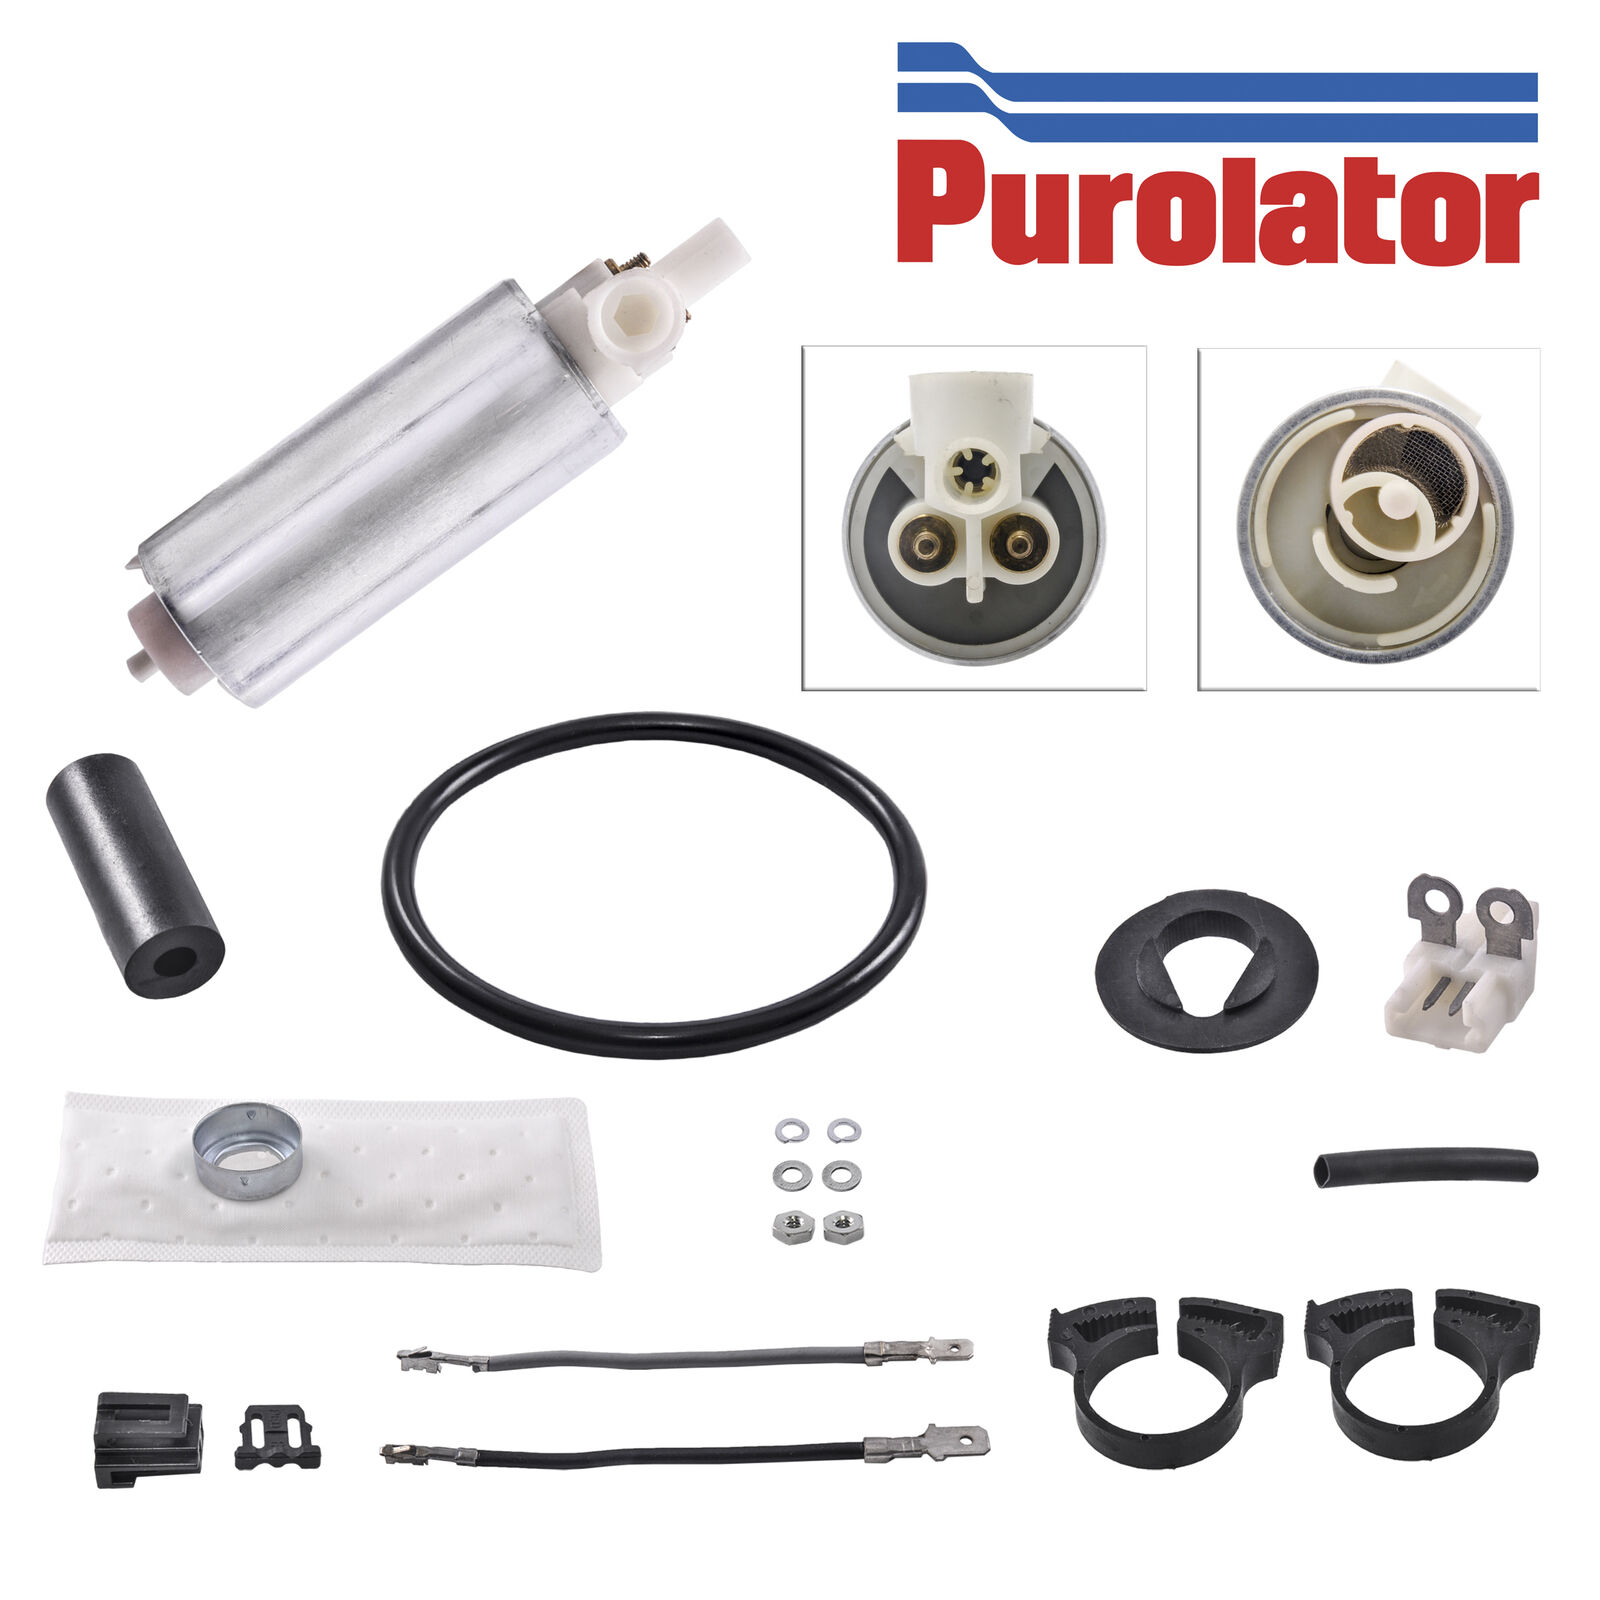 1999 Nissan Altima Purolator Oil Filter Recomended Car Fuel Filters Product Image L30001 Source Brand New Pump E3902 Ep386 For Chev Buick Gm 1985